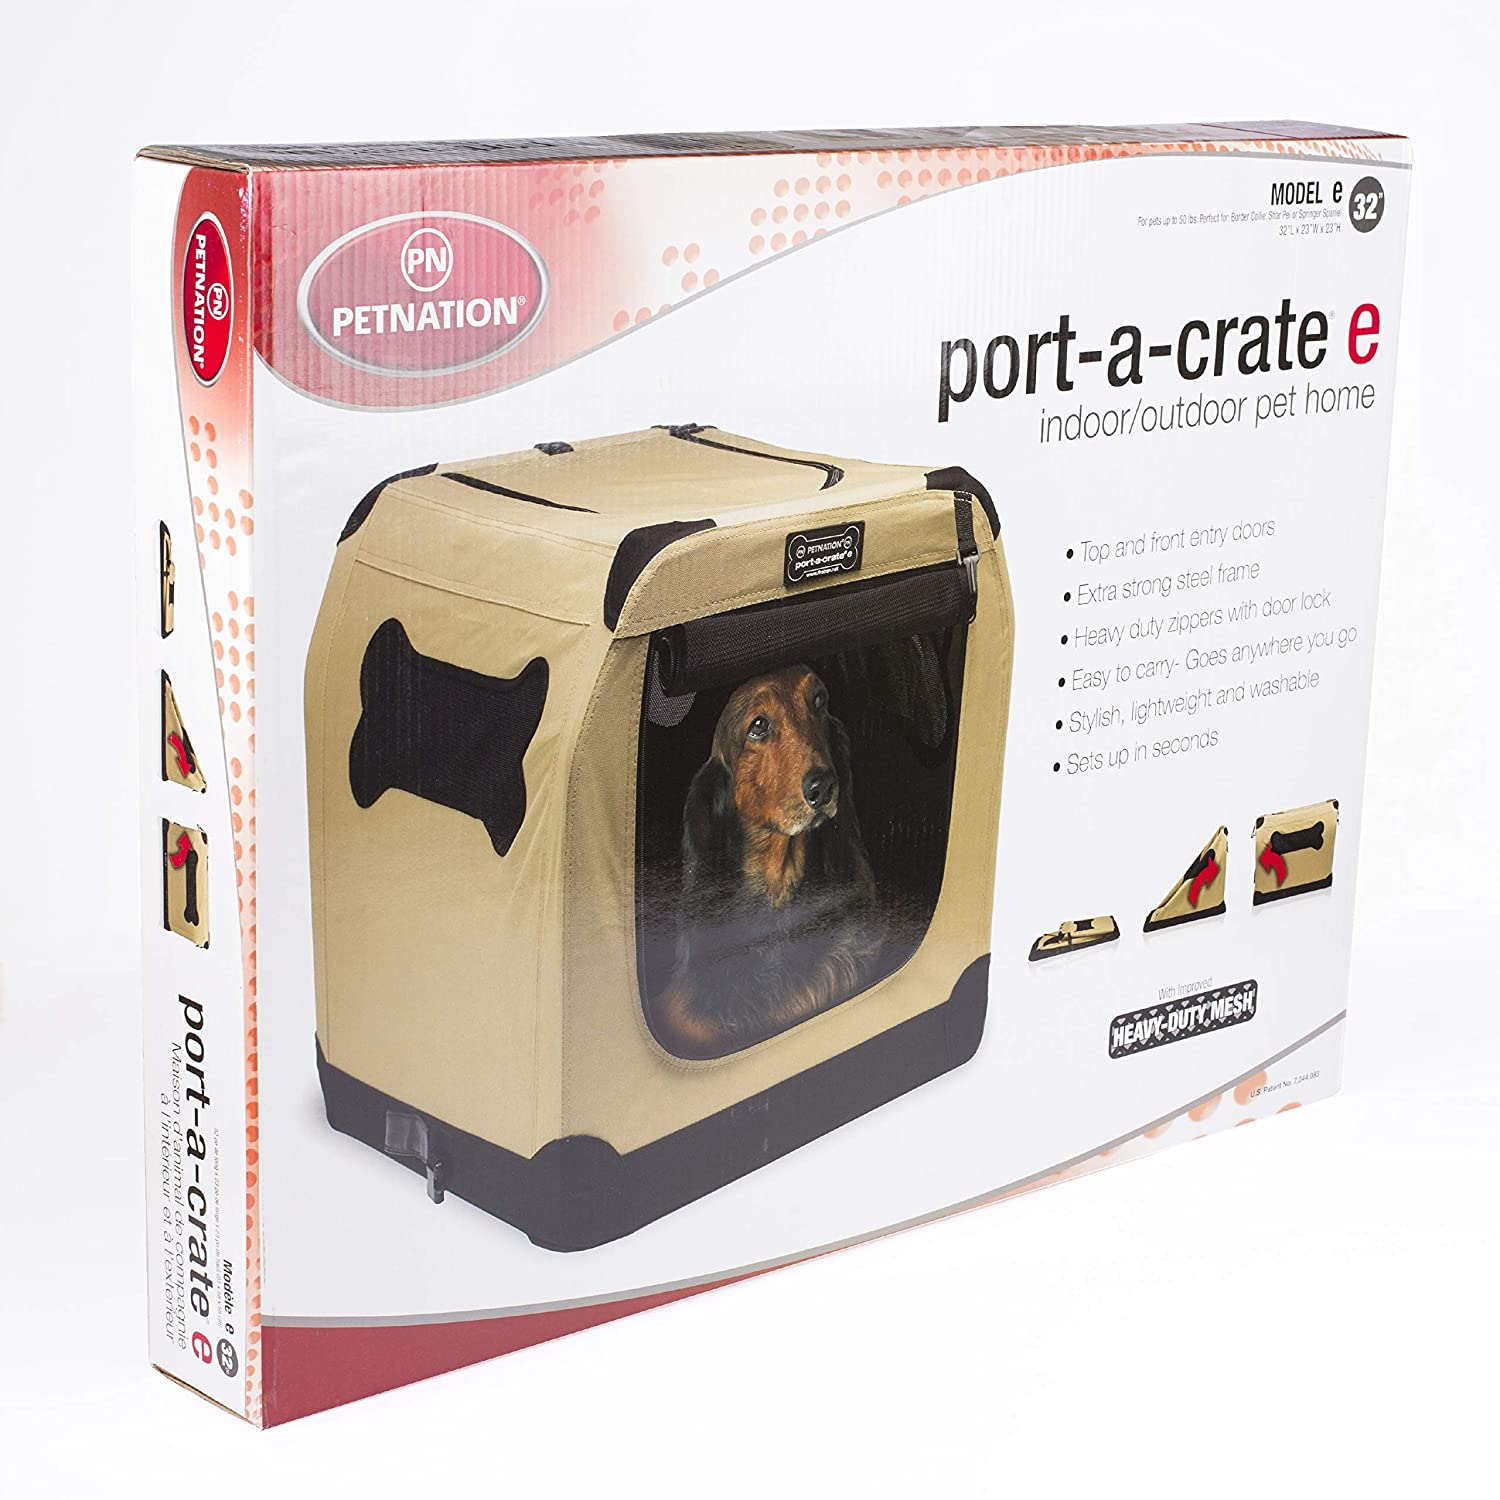 32-Inch Petnation Port-A-Crate Indoor and Outdoor Home for Pets 612